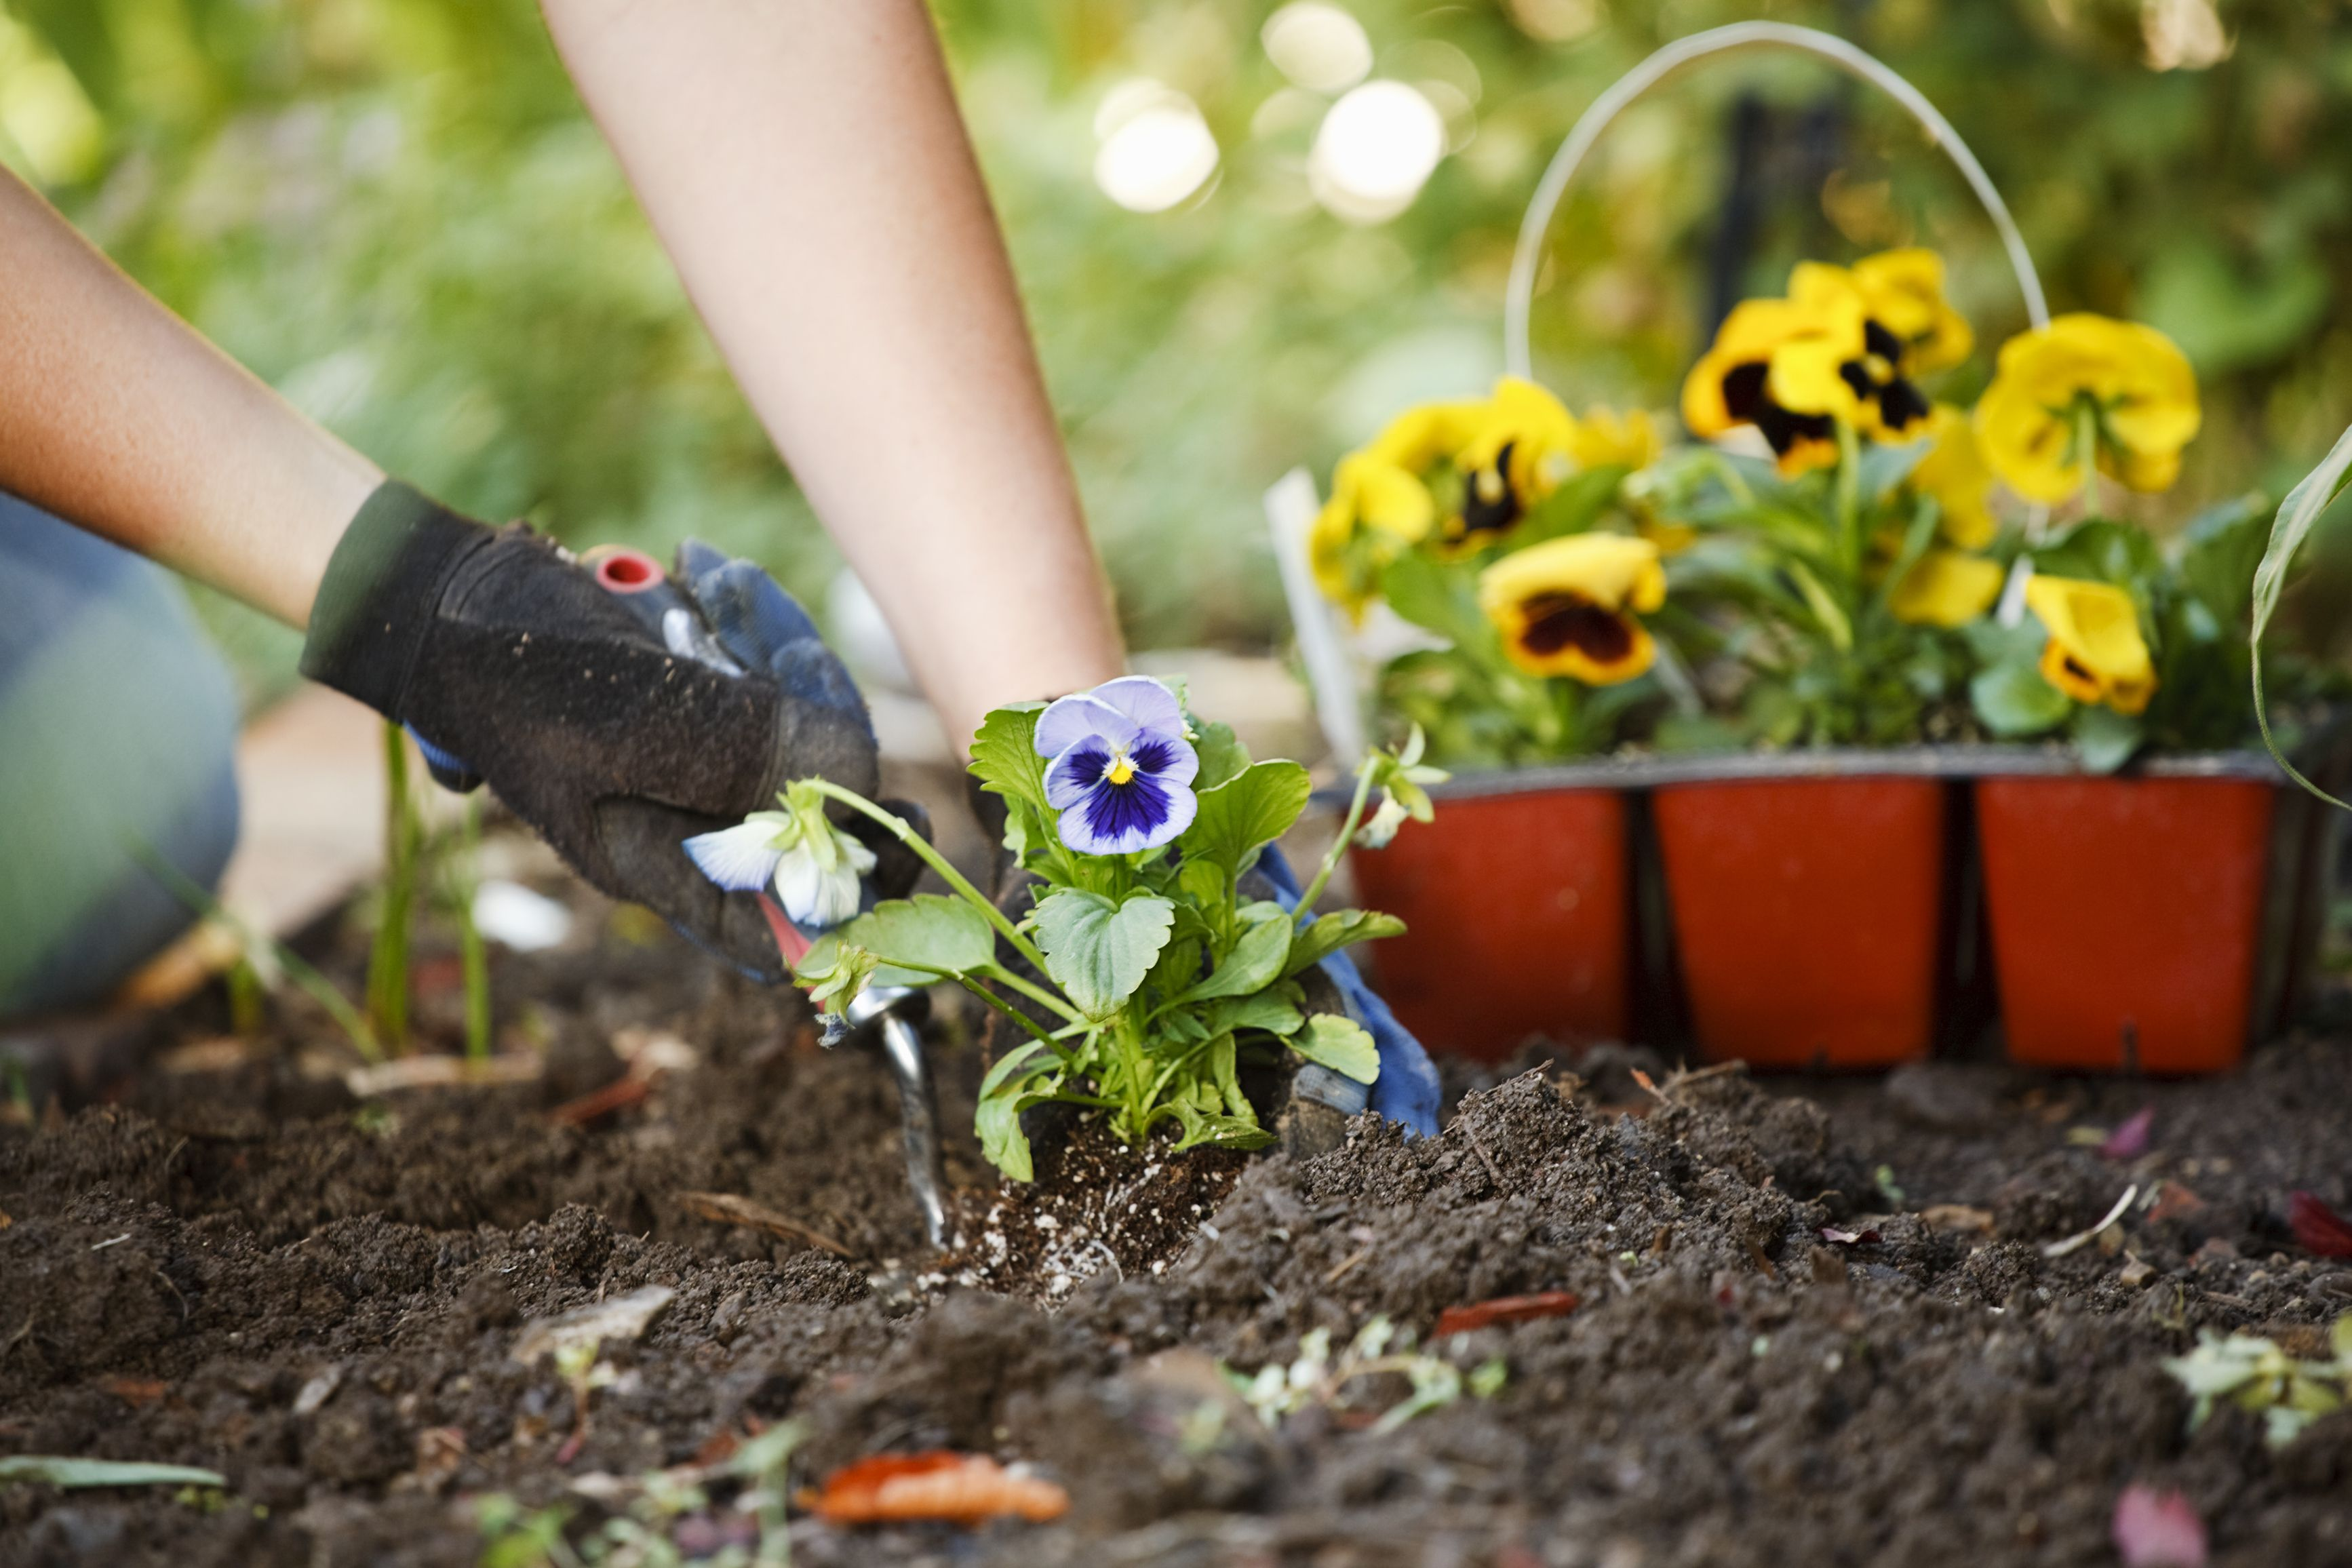 7 chemical-free homemade weed killers for your garden